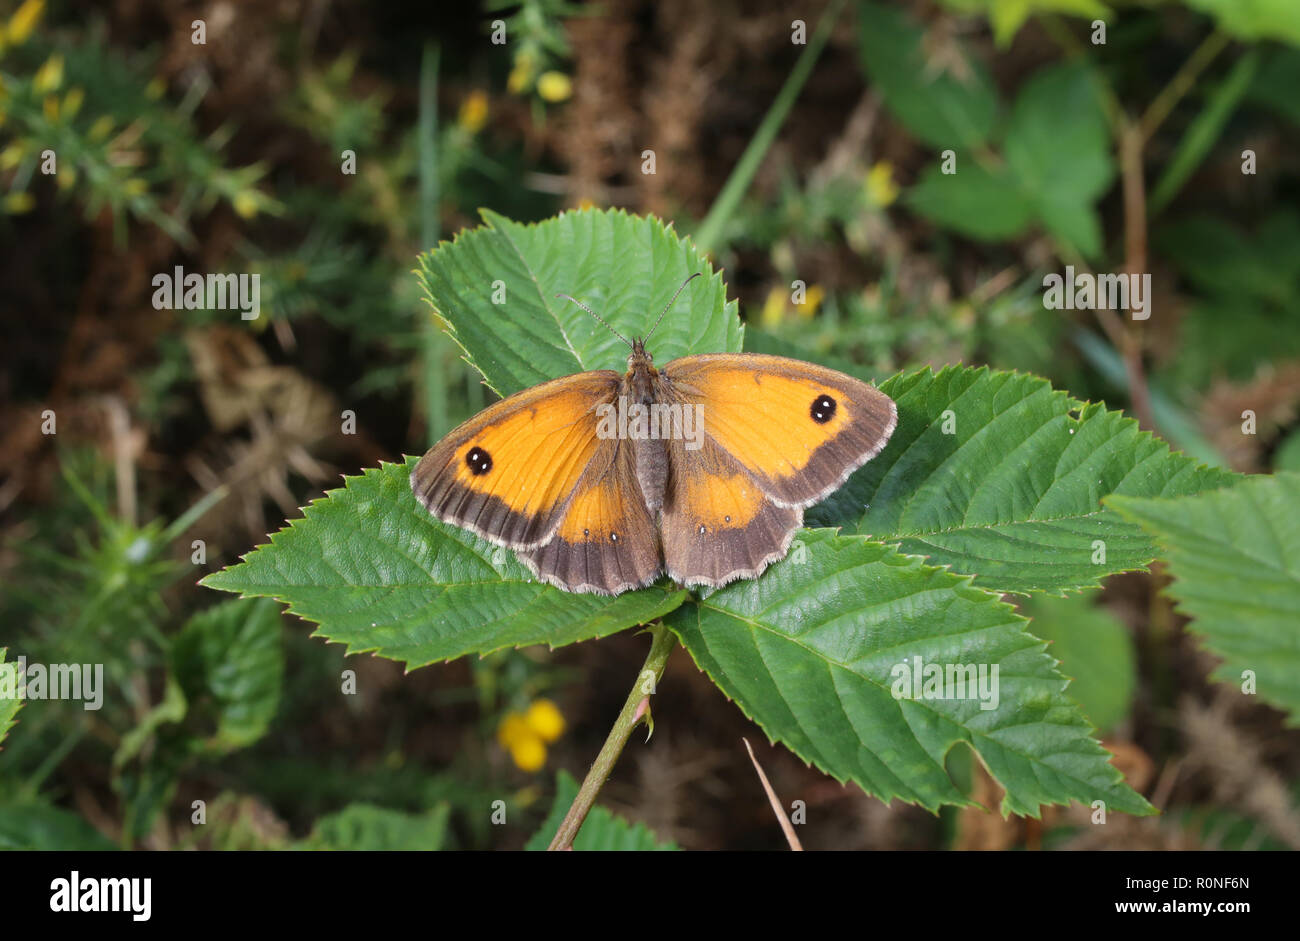 A Gatekeeper butterfly resting on a leaf with its wings open.  Seen in the English midlands in 2016. - Stock Image